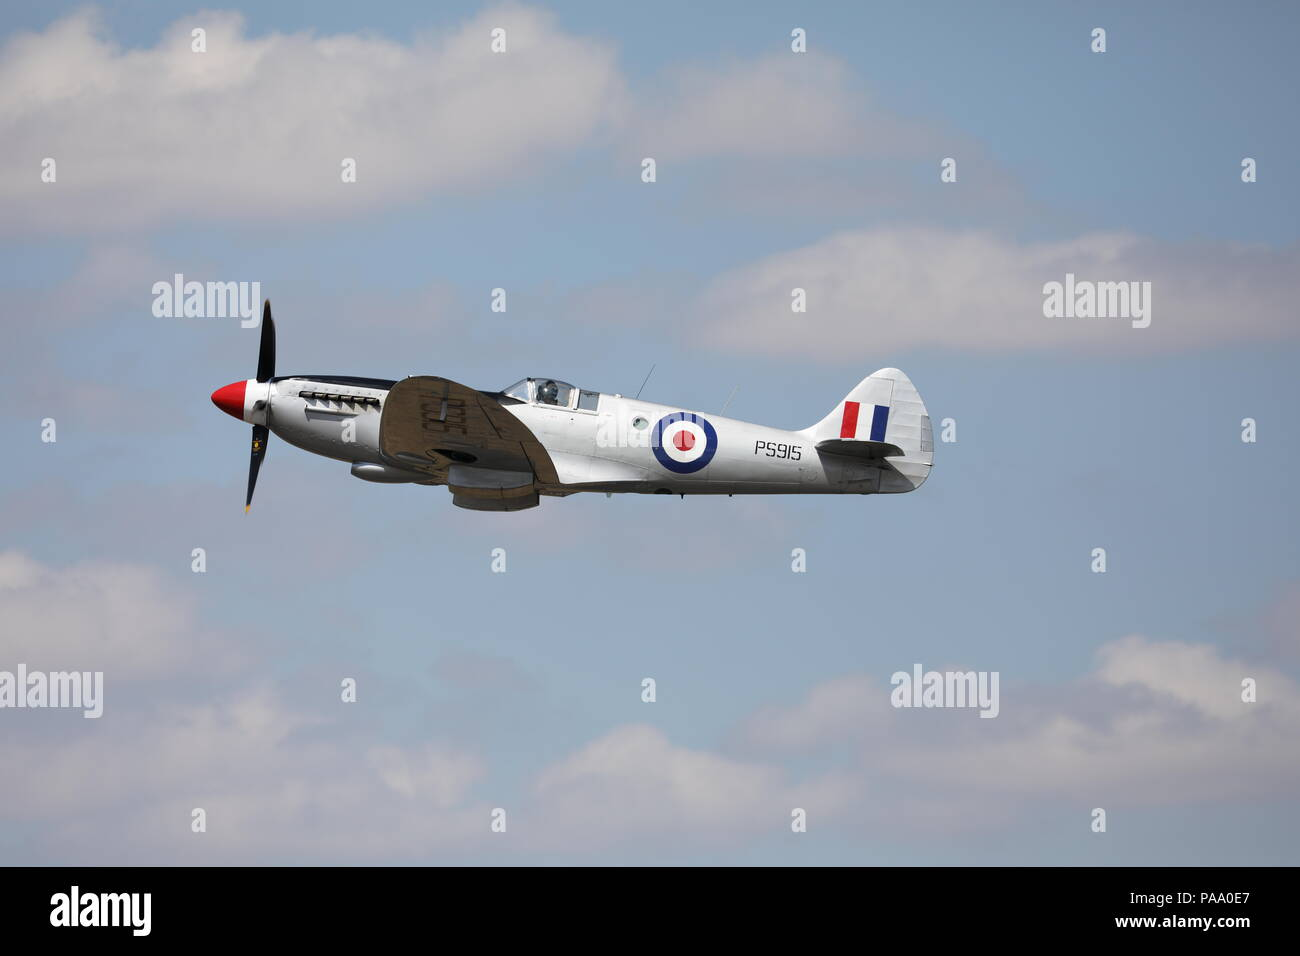 Super Marine Spitfire PS915 Fairford RIAT Sunday 15th July 2018 Military Aeroplane Royal International Air Tattoo RAF100 Stock Photo